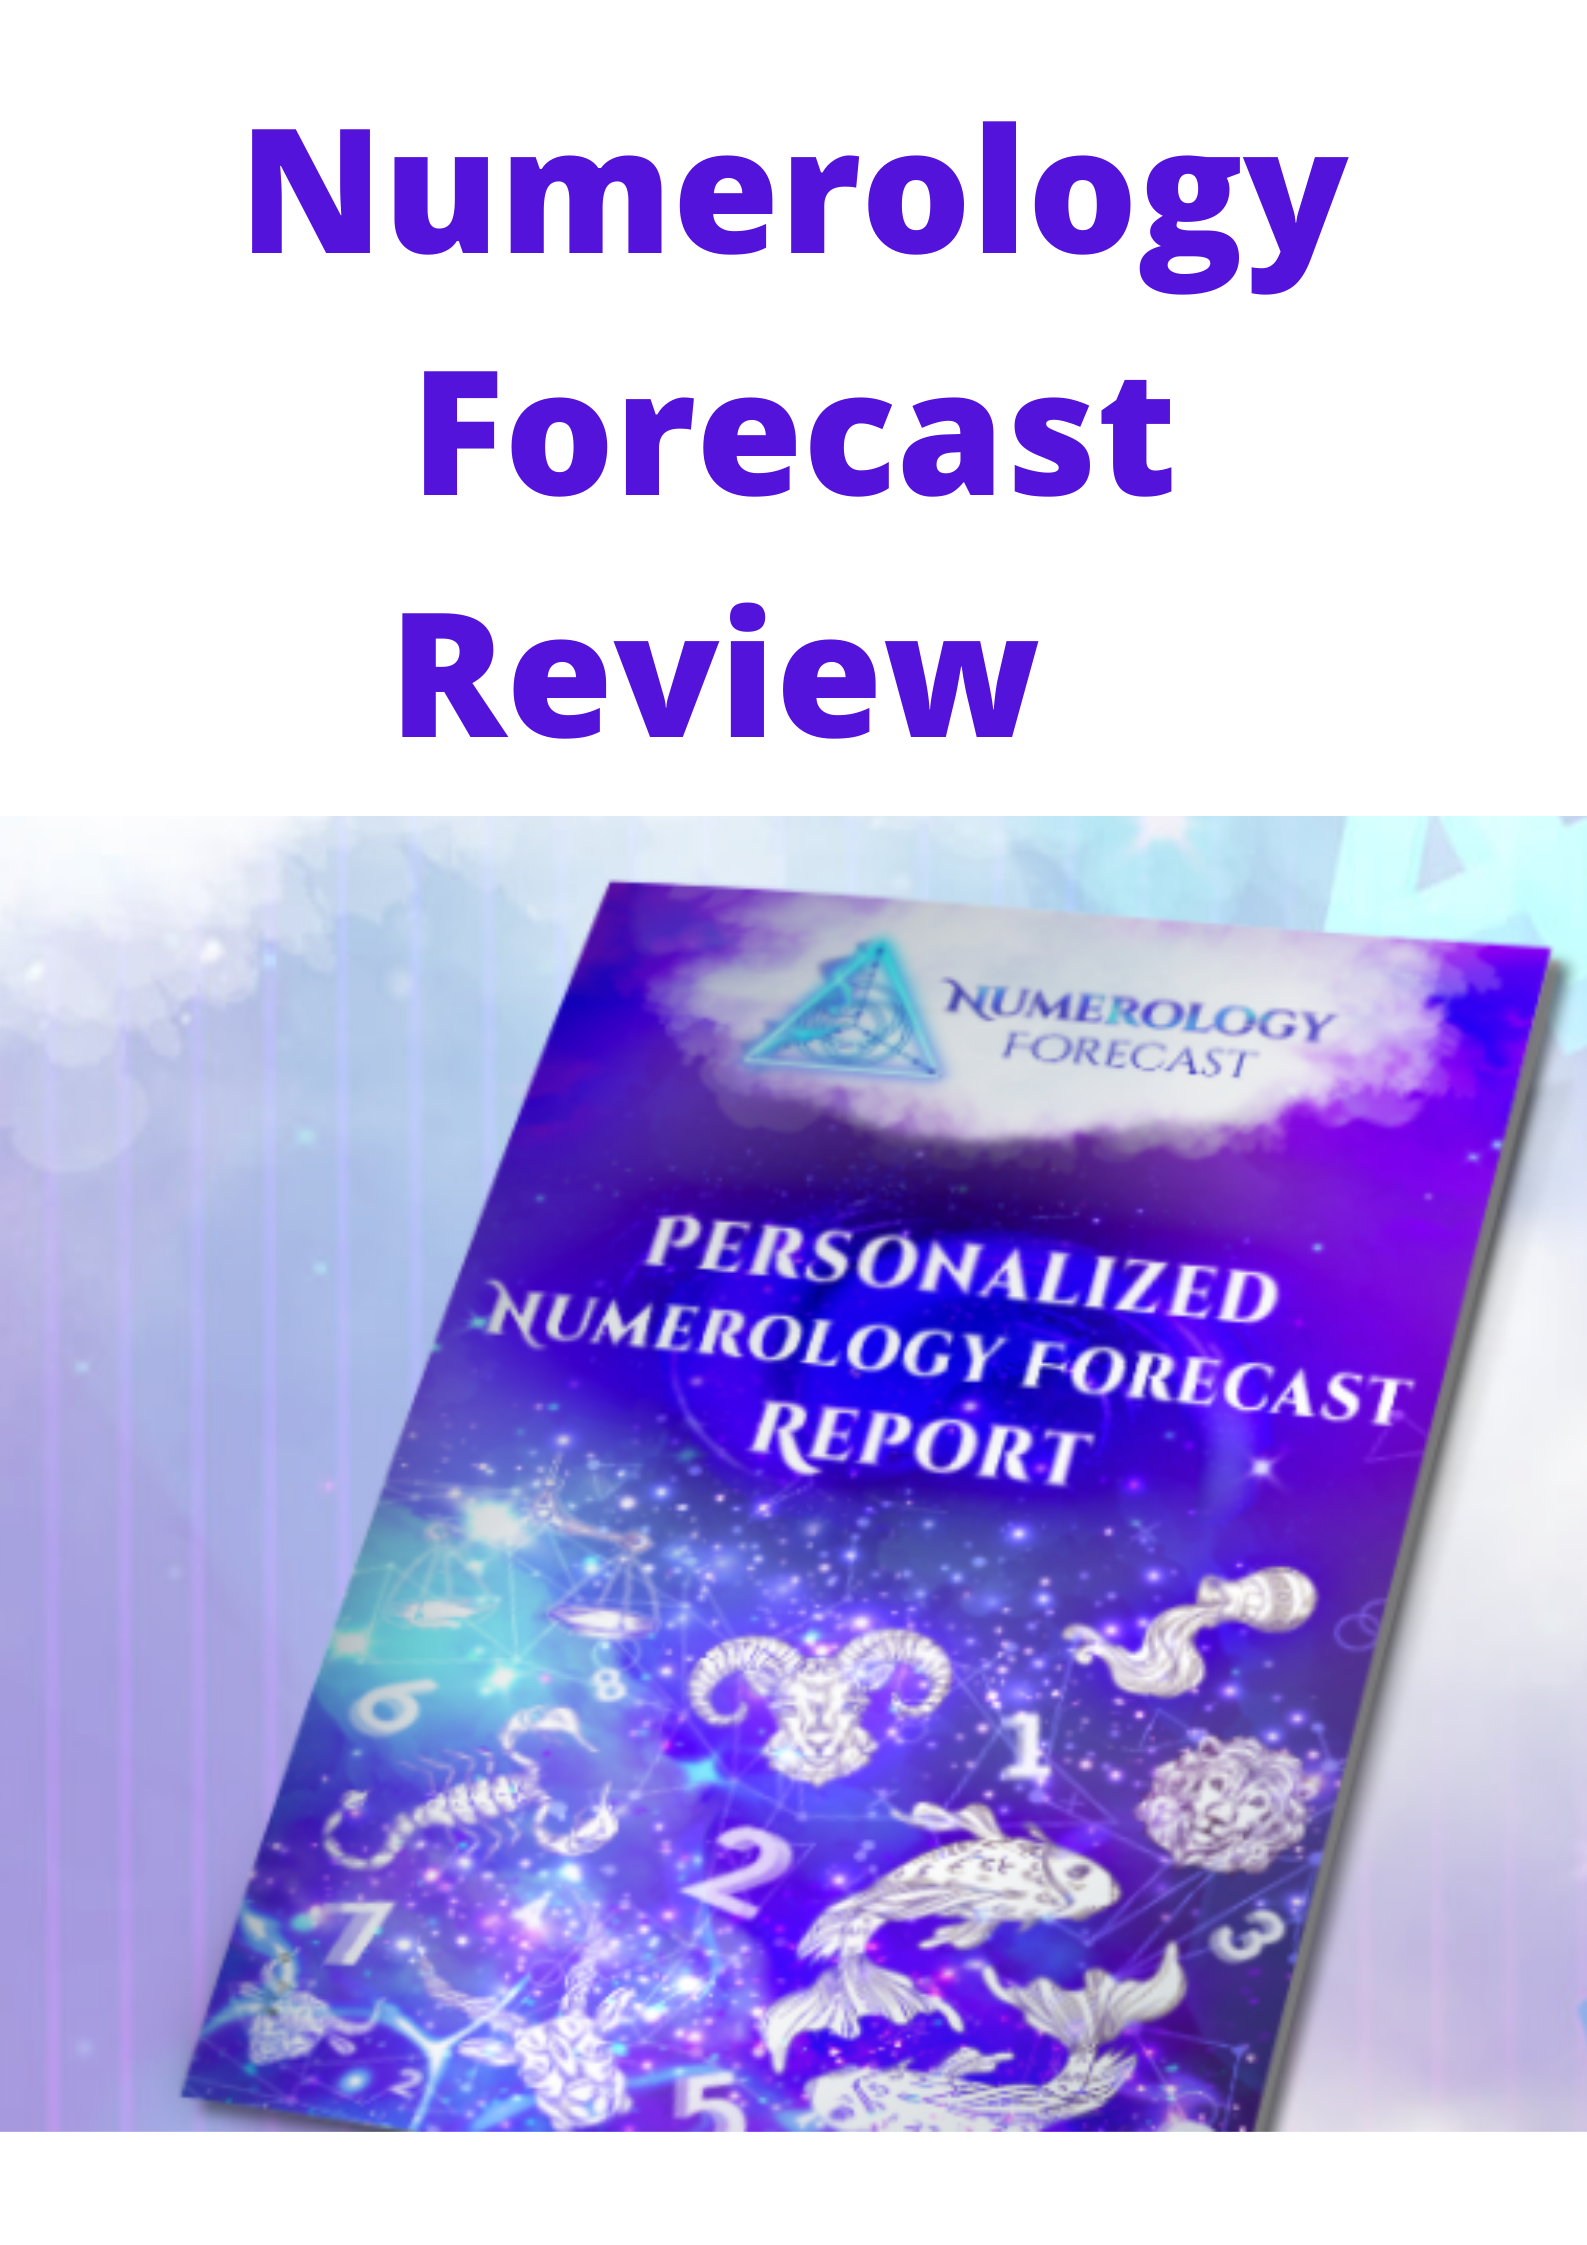 Numerology Forecast Reviews-Should you try this?